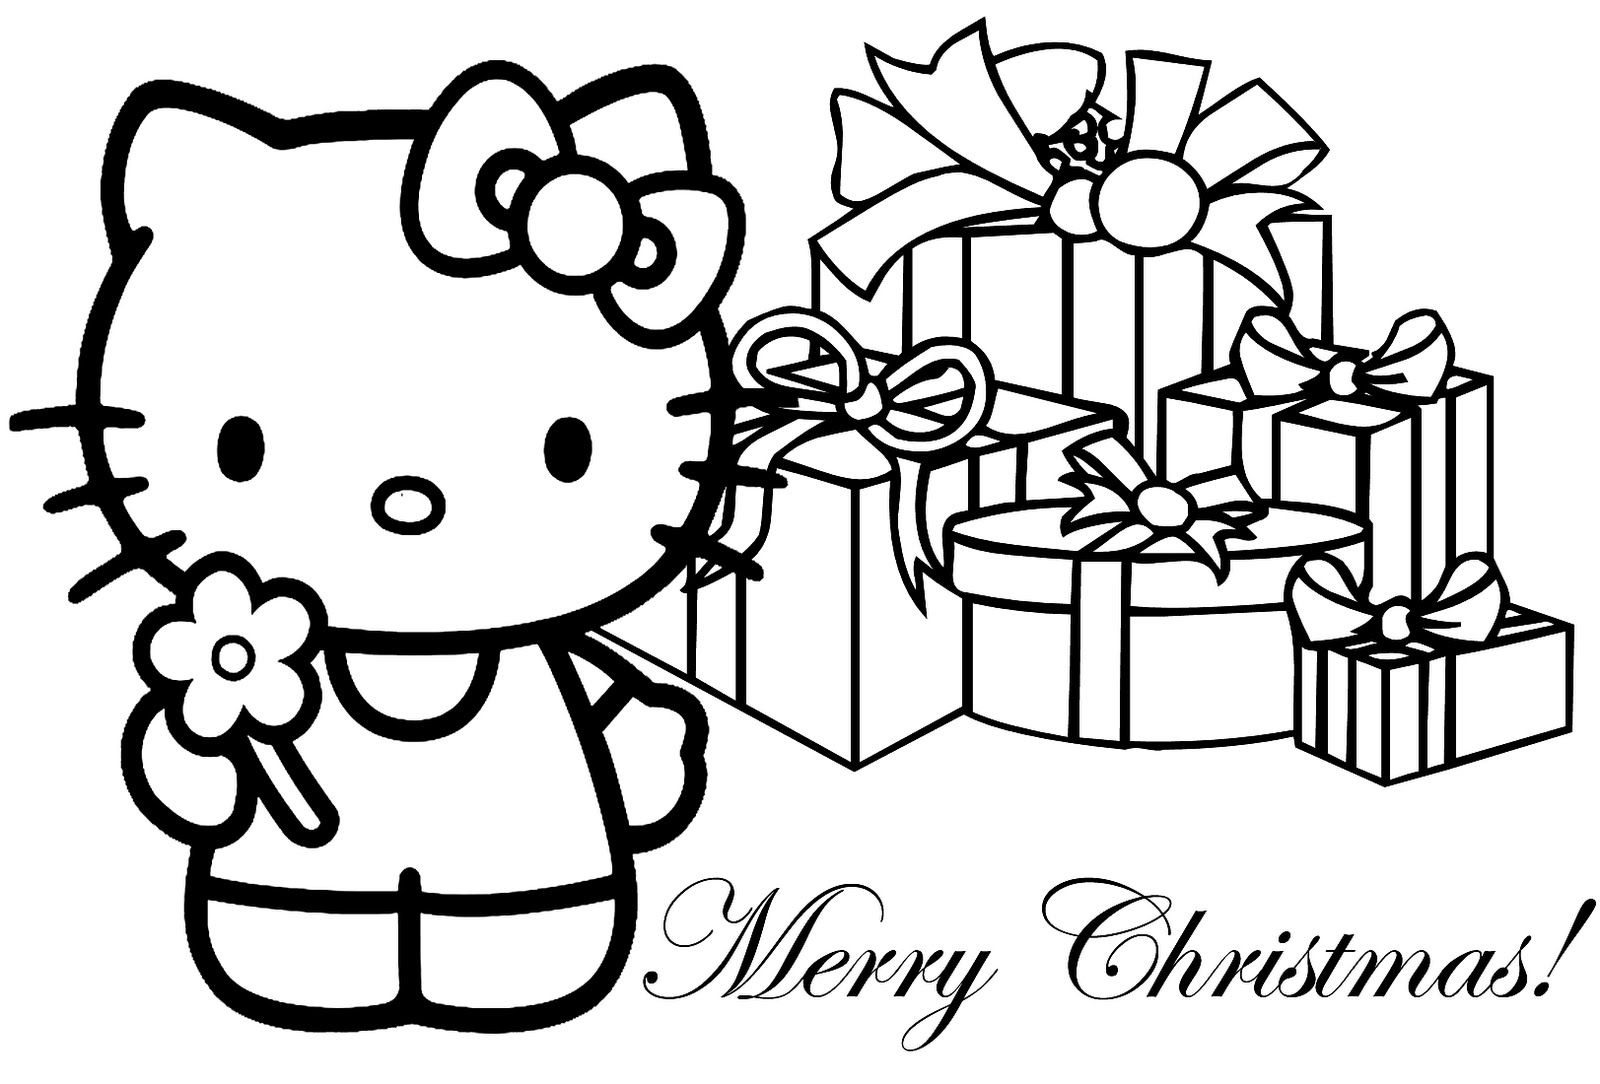 Christmas Colouring Pages To Print With Here Are Two Hello Kitty For You